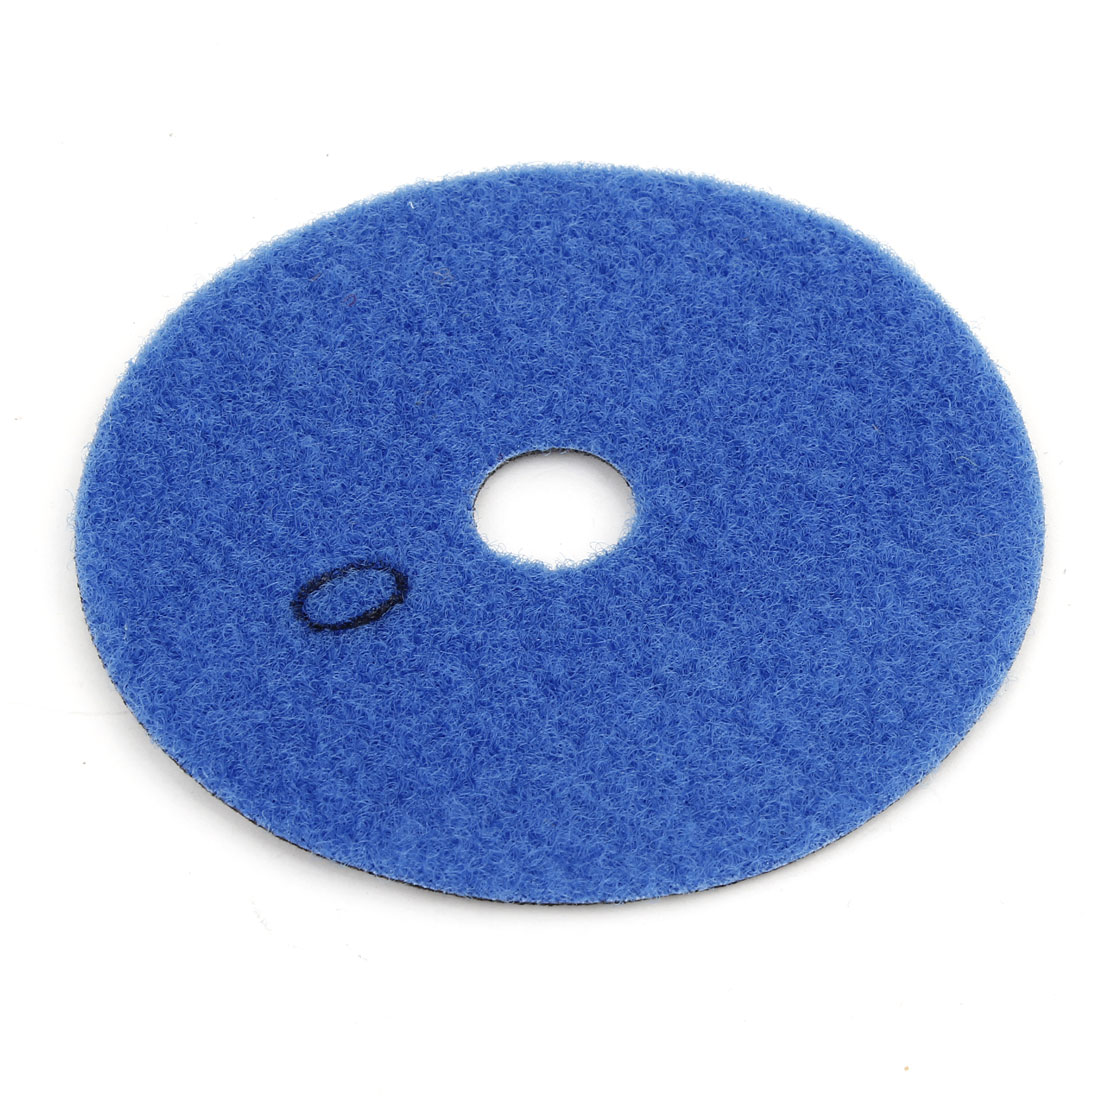 Blue Gray Granite Tile Concrete Stone Diamond Polishing Pad Disc 10cm Dia